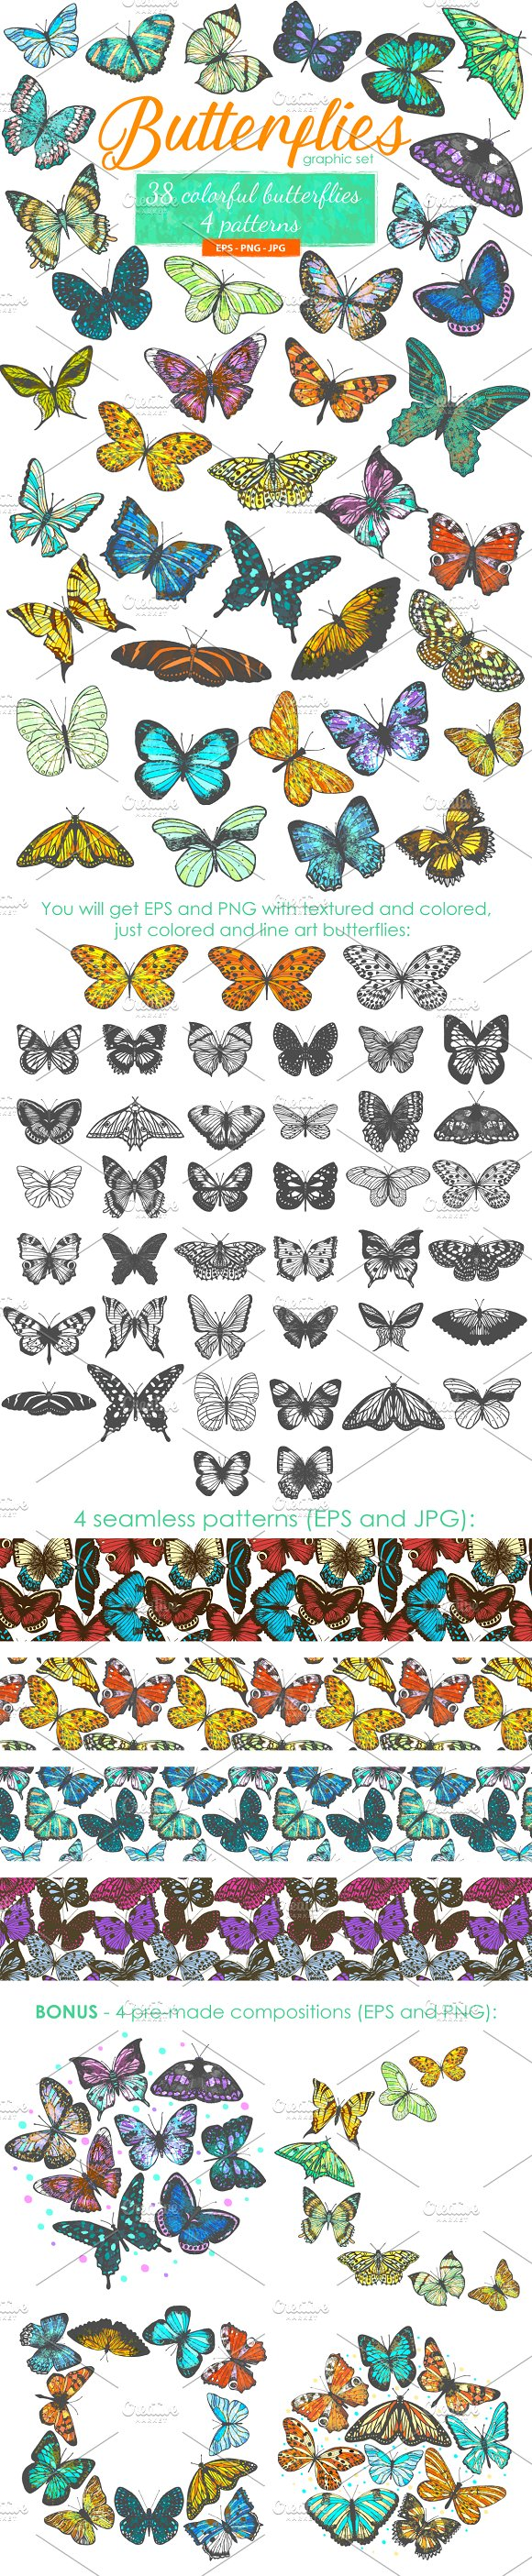 Butterflies Graphic Set